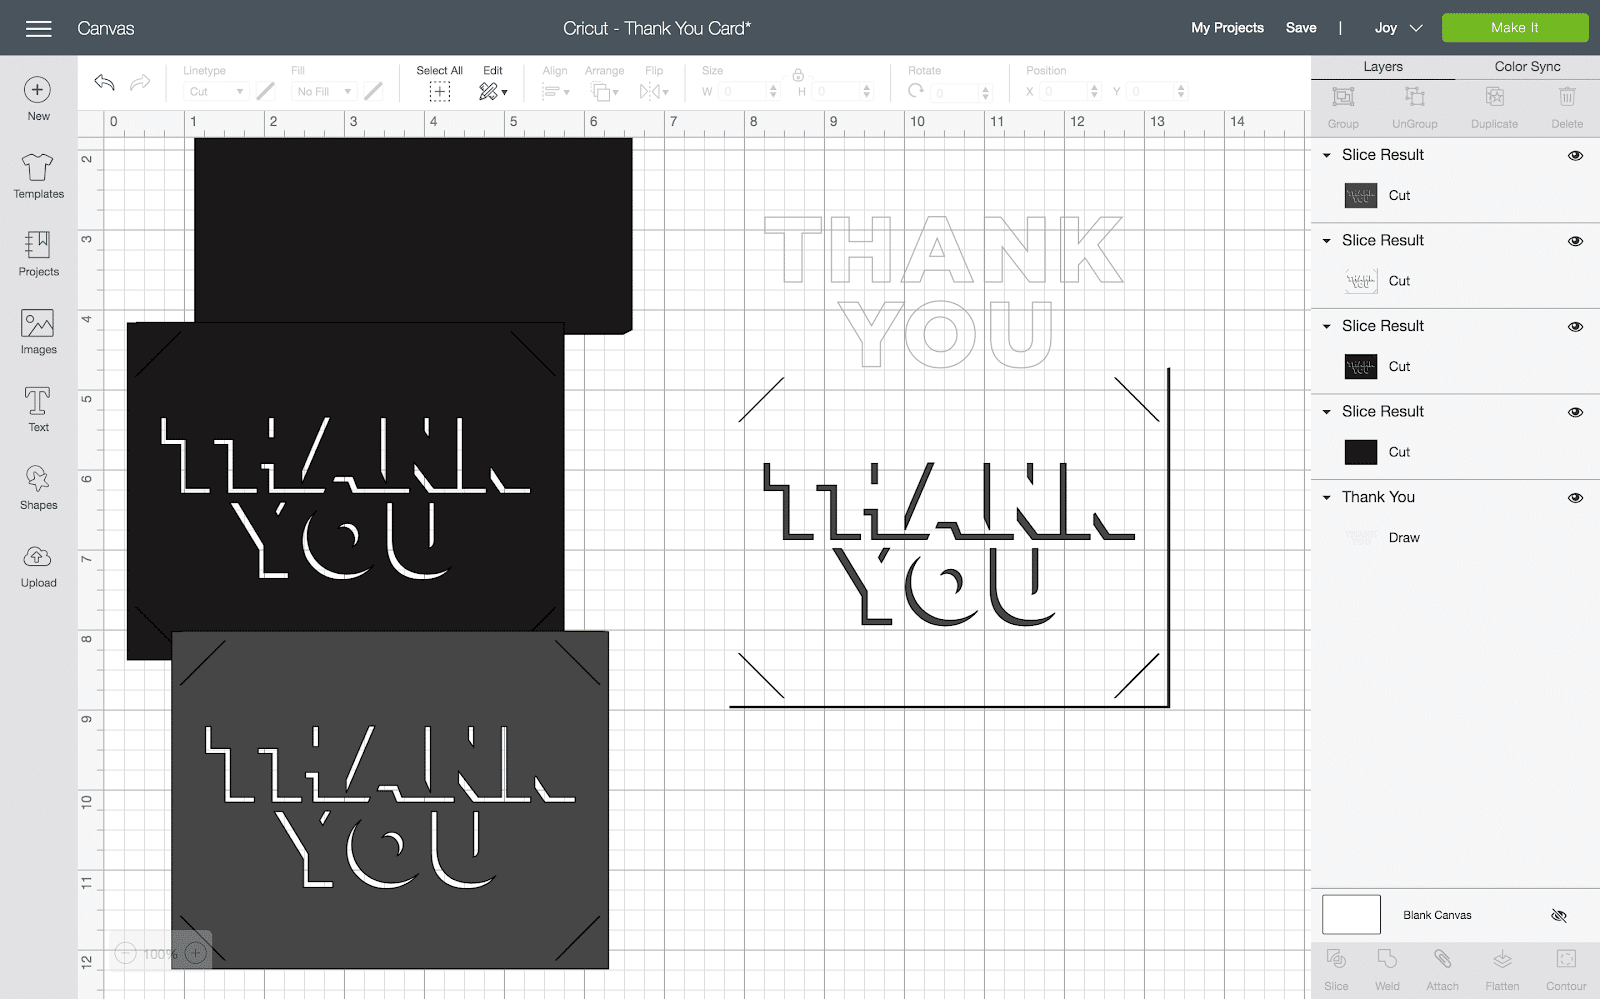 cricut design space image after using slice tool